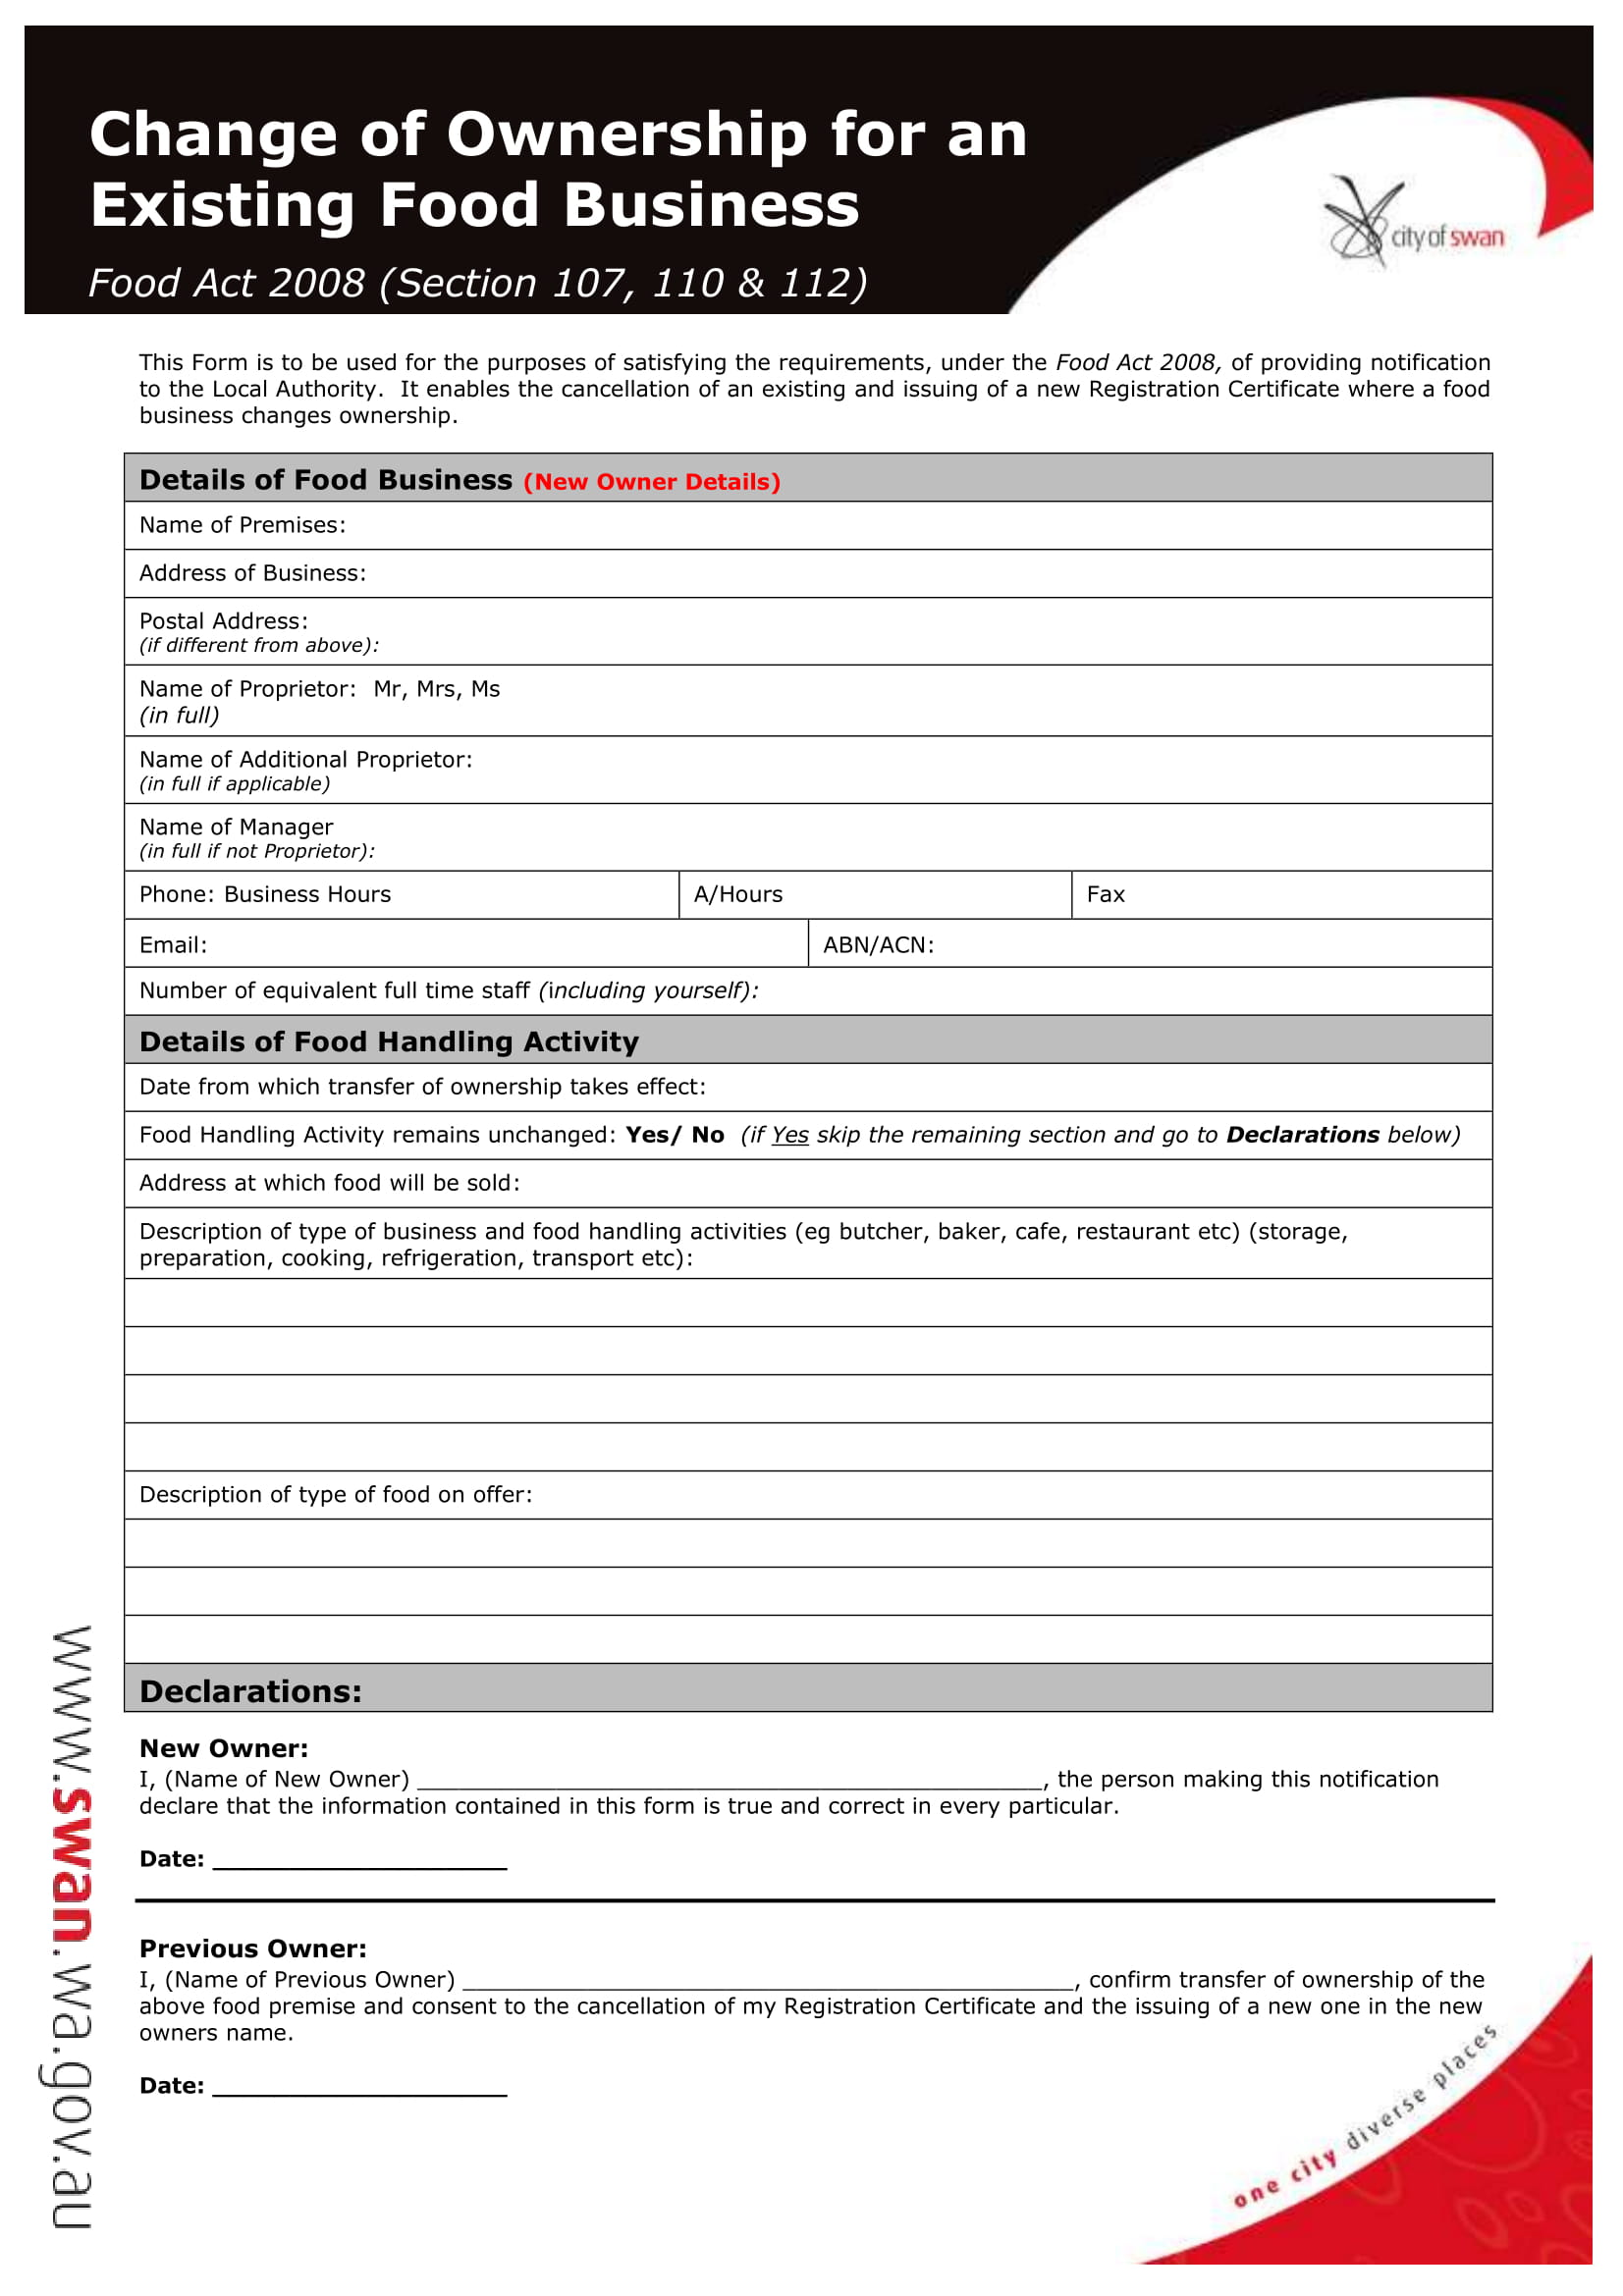 existing food business change of ownership form 1